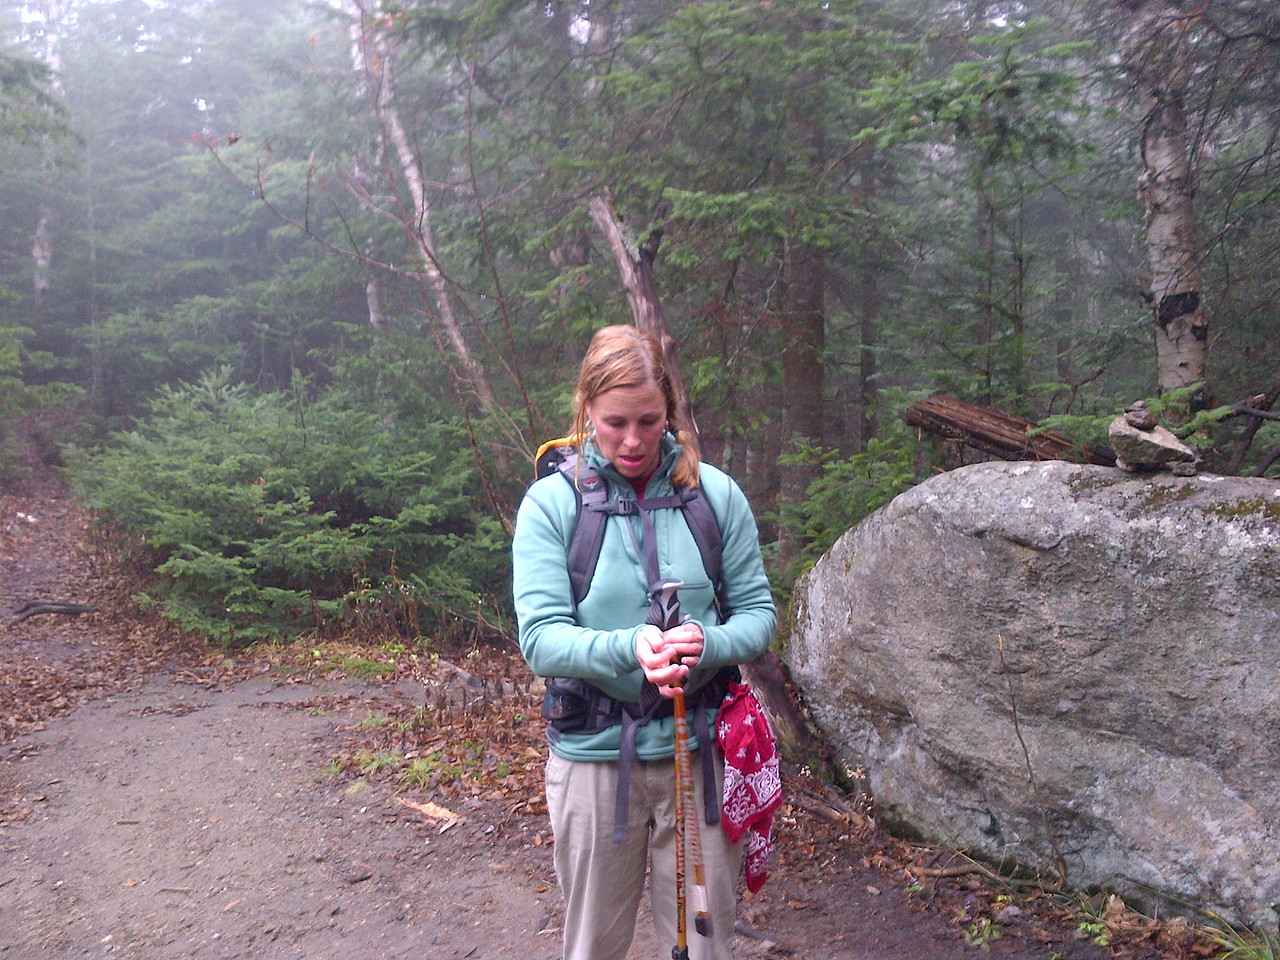 We did not encounter any rain but the fog was so thick that you actually got wet.